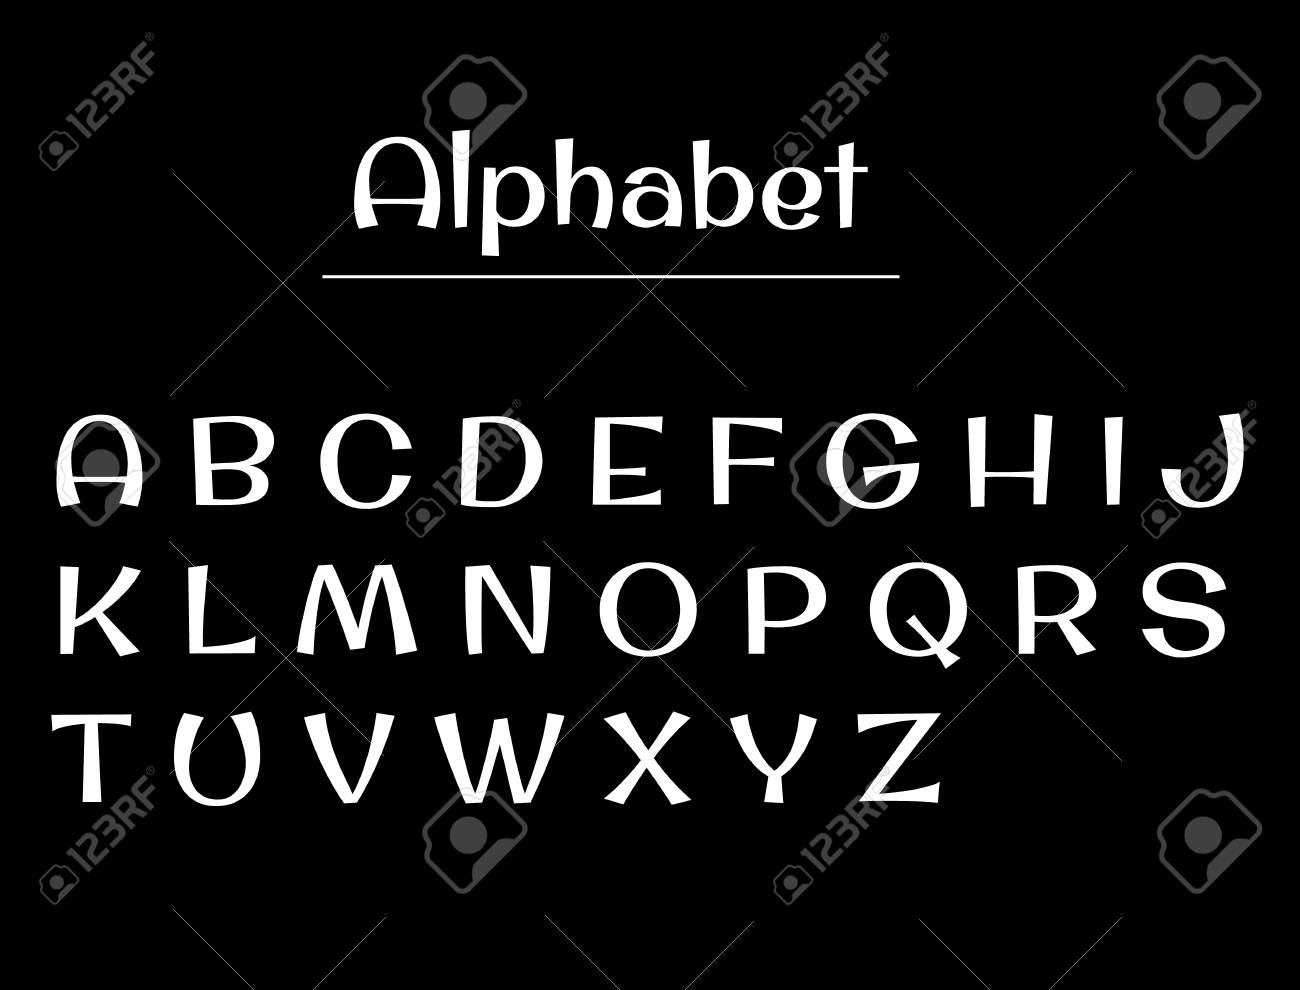 Alphabet Letters Alphabet White Letters On A Black Background Royalty Free Cliparts Vectors And Stock Illustration Image 81633285